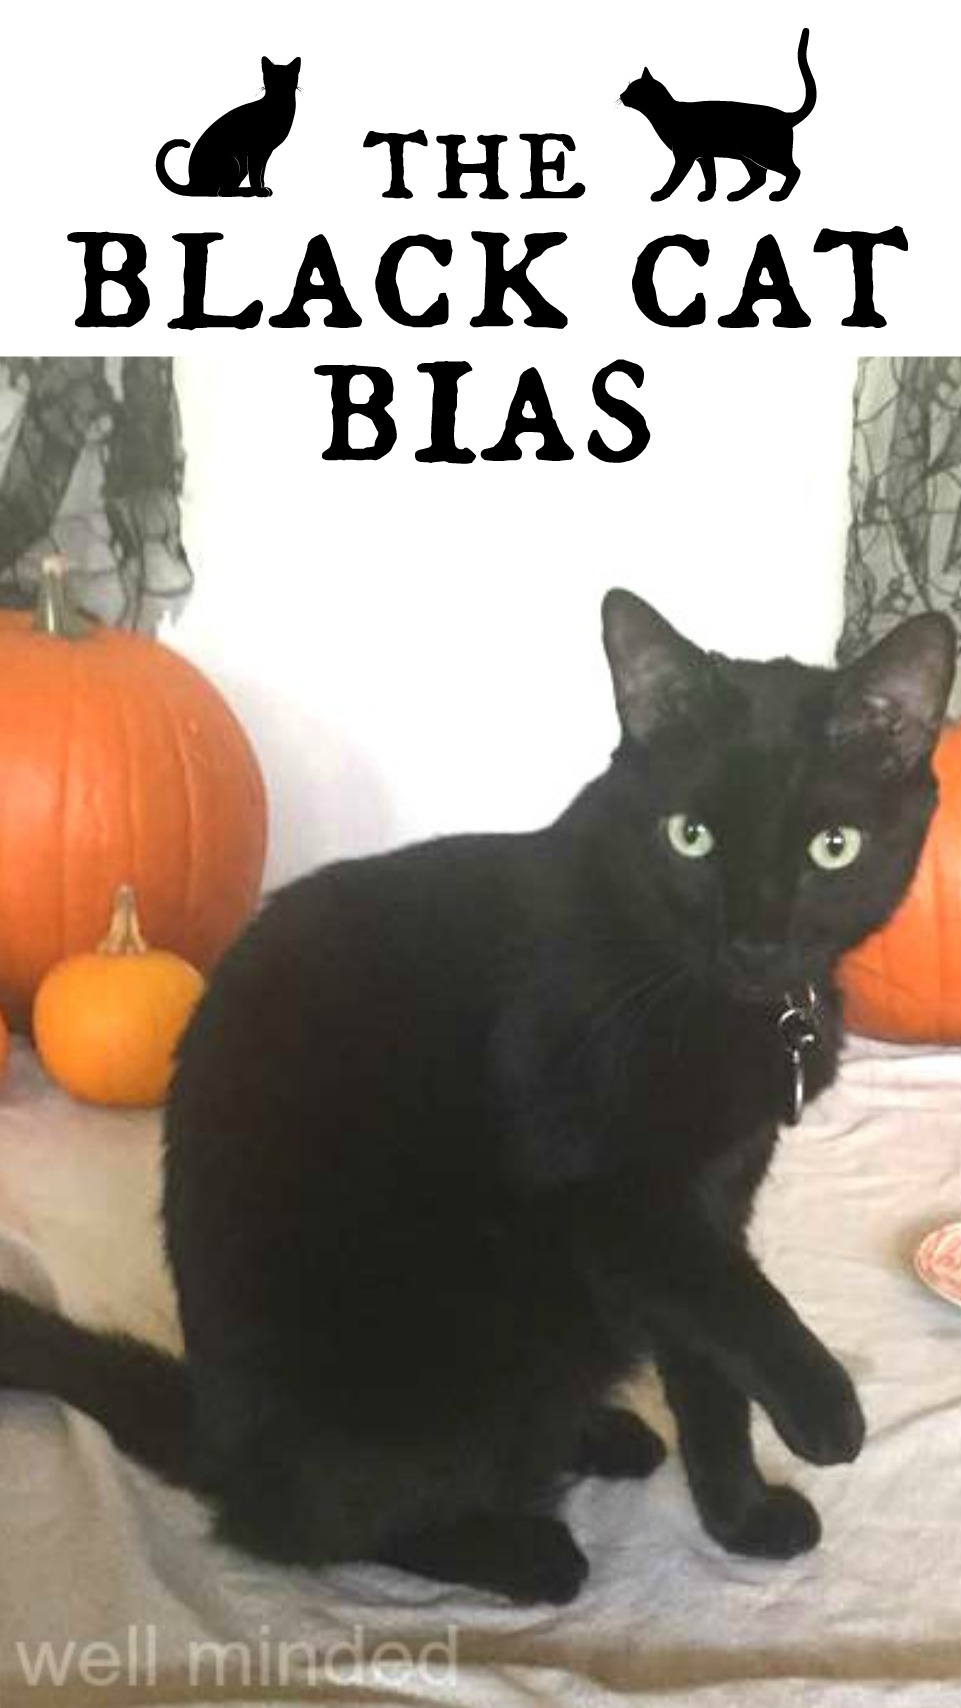 Do cats bring bad luck? And are they really the last to be adopted? The Black Cat Bias. wellmindedpets.com